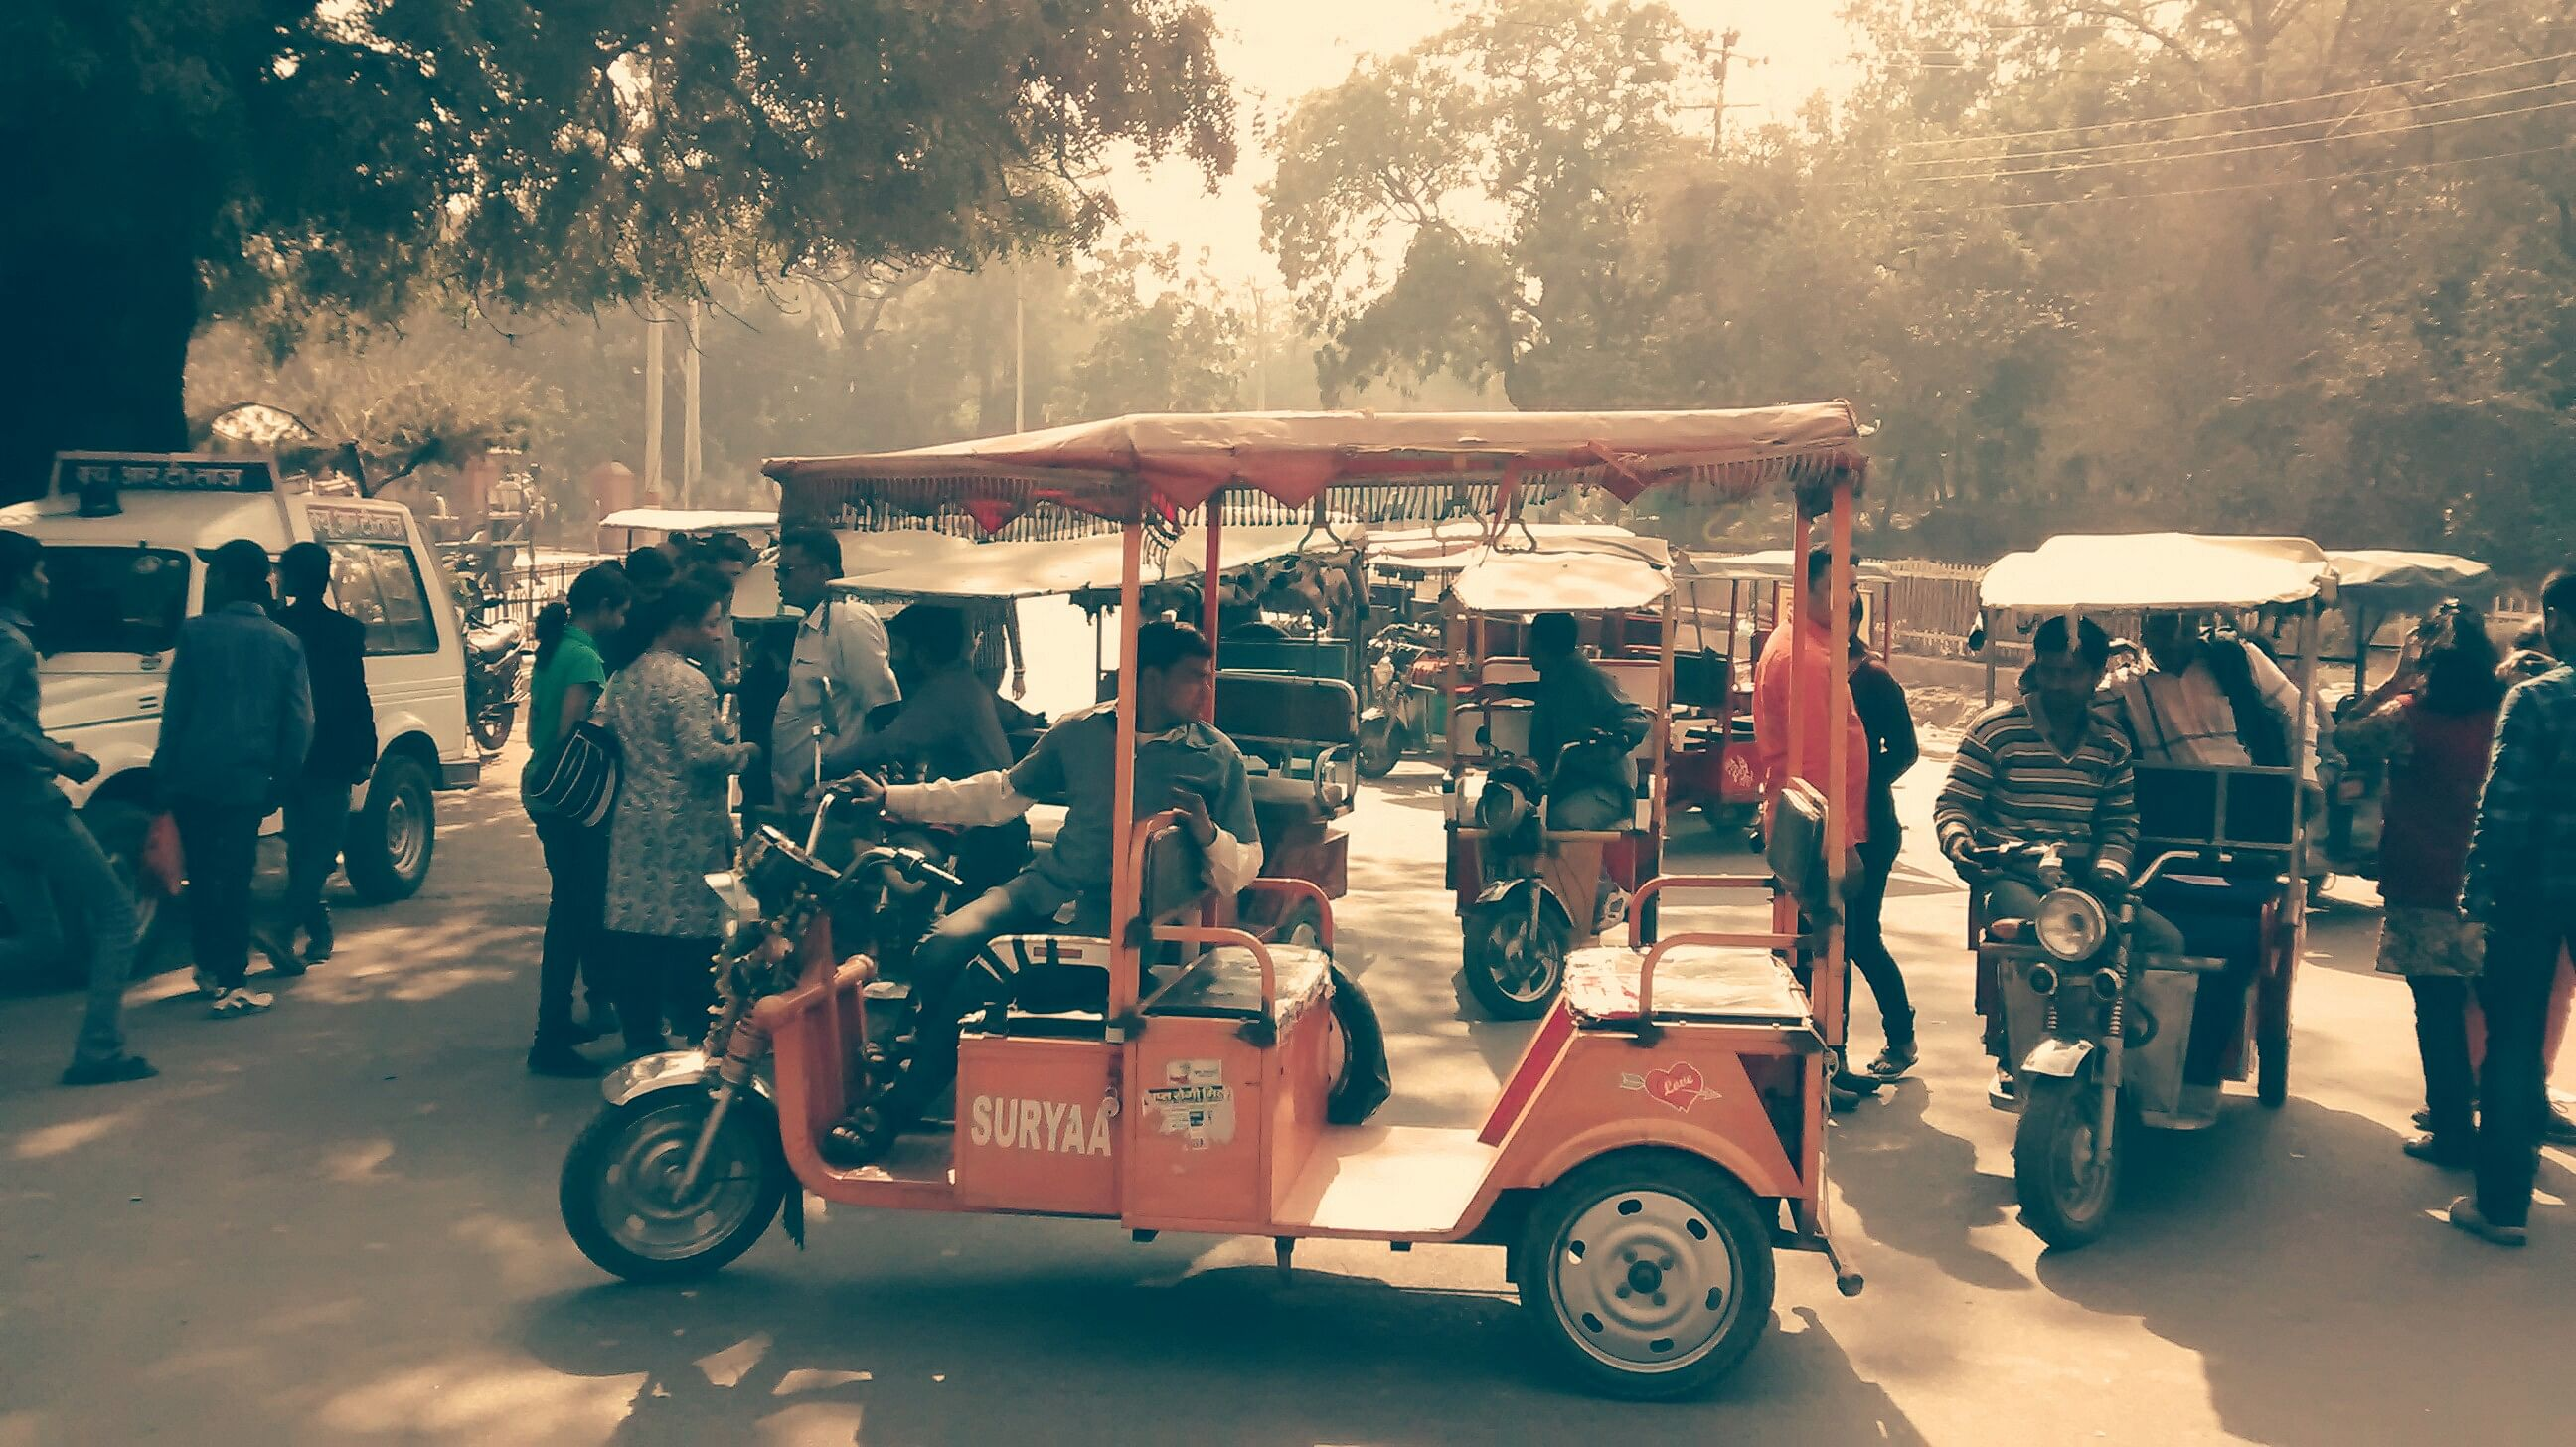 The incredible rickshaws cost as much as a regular rickshaw.